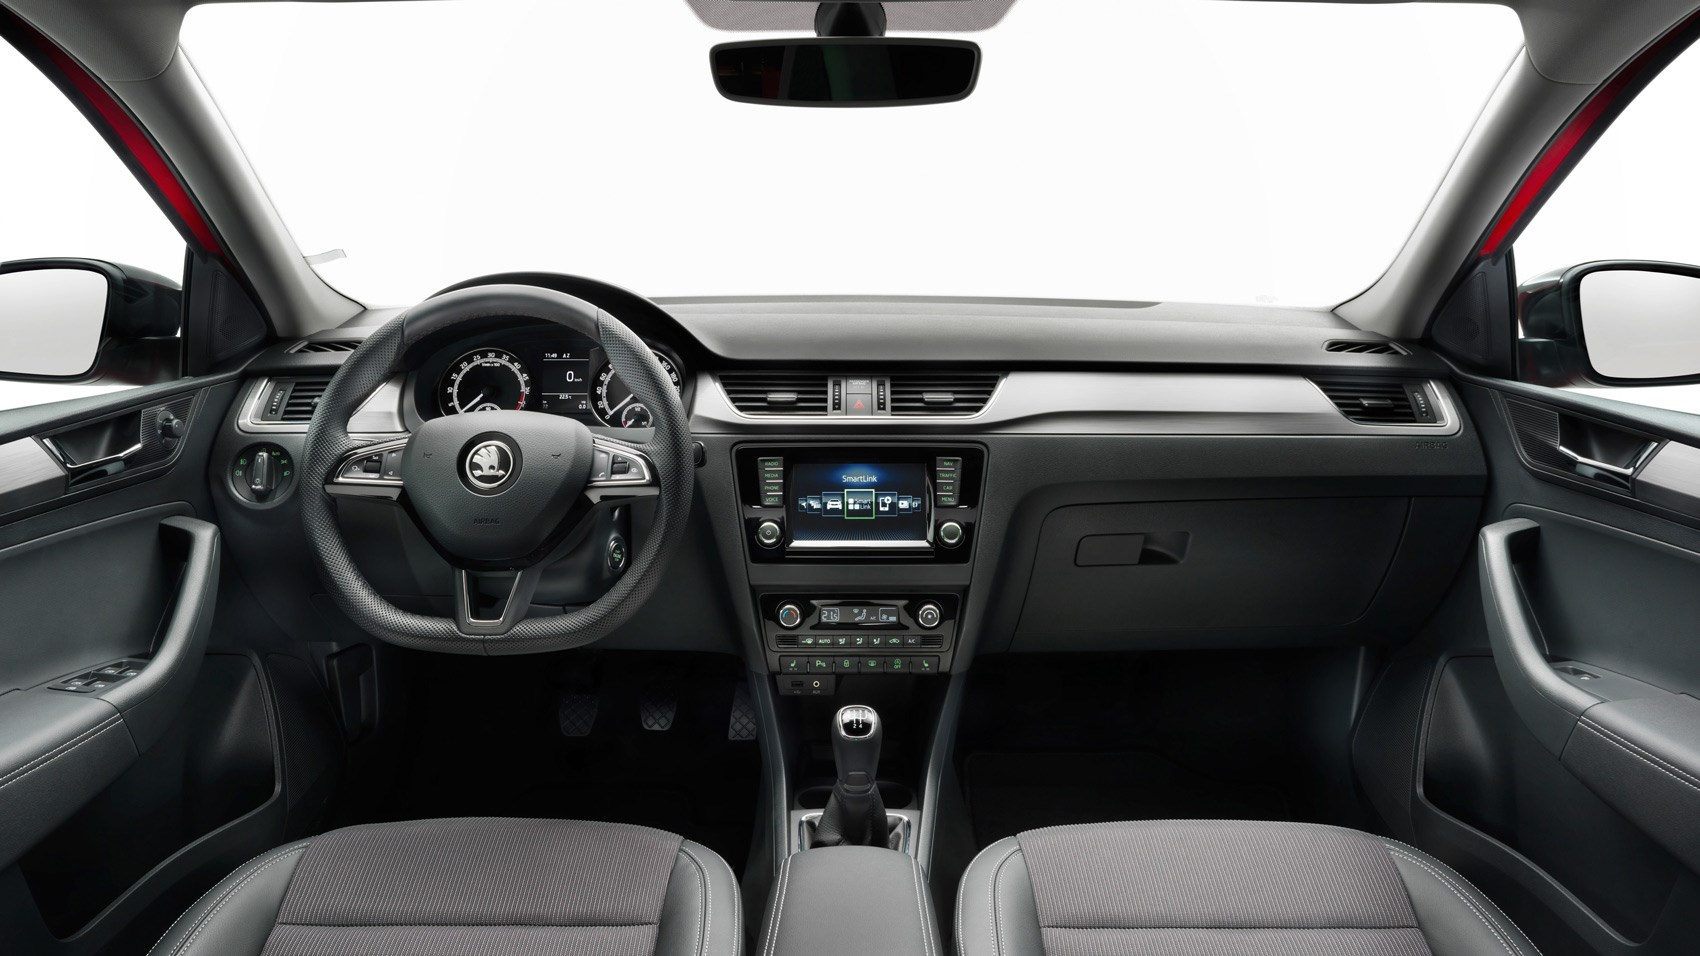 Skoda Rapid Spaceback interior